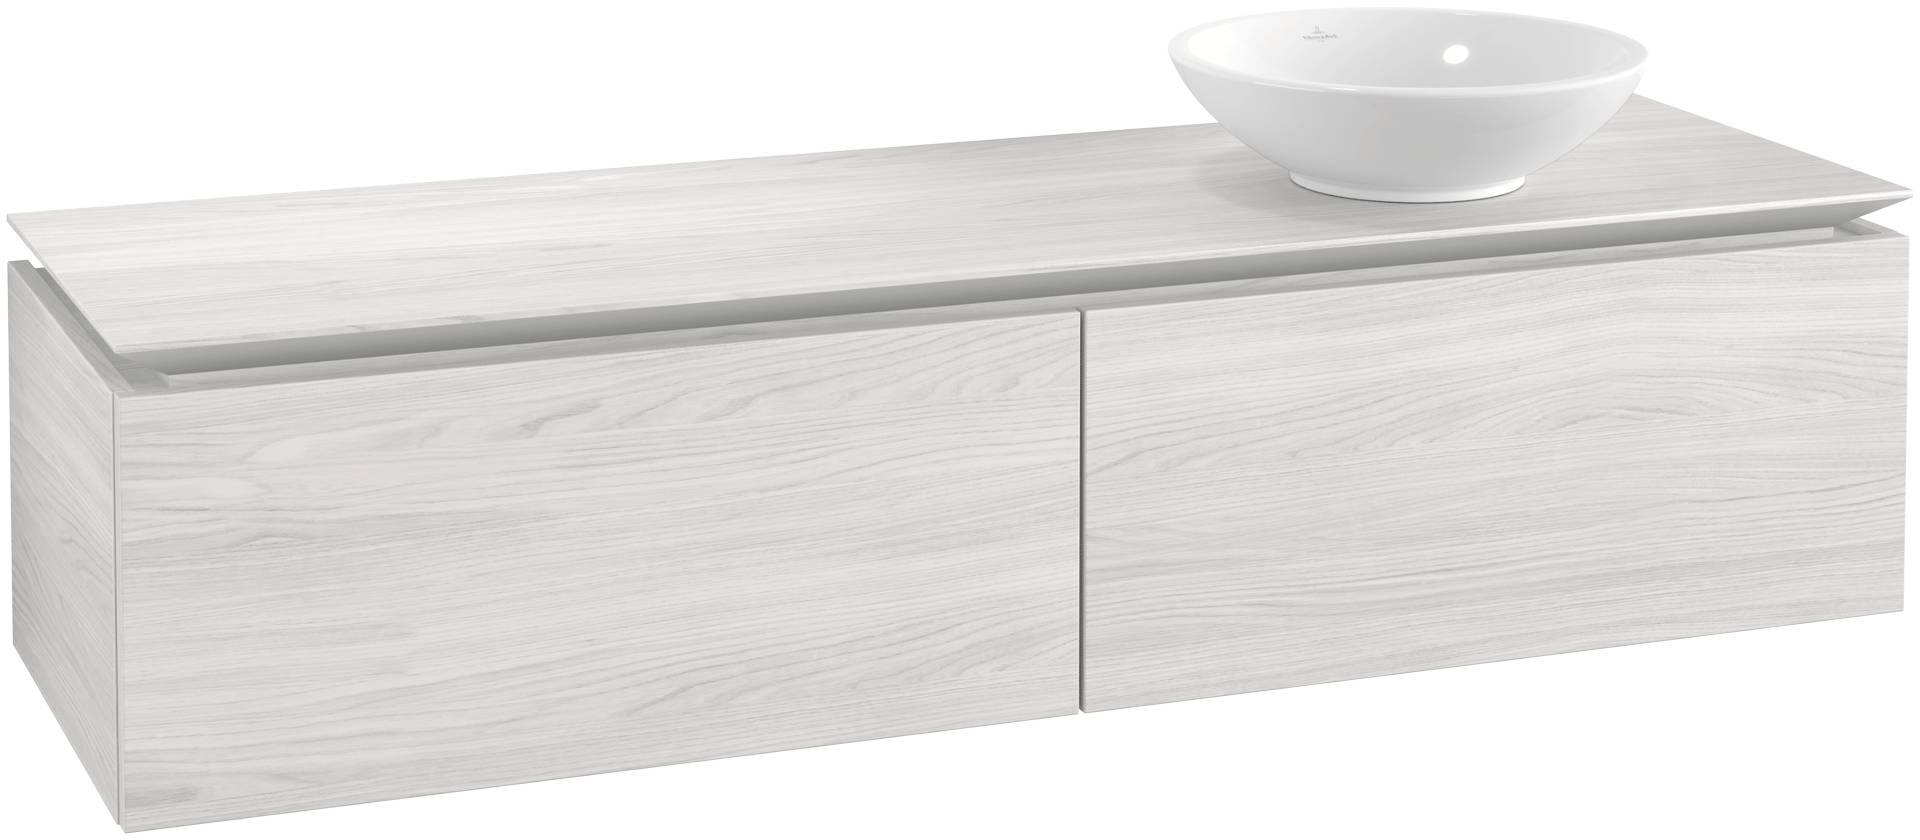 Villeroy & Boch Villeroy & Boch Legato - Meuble sous lavabo with 2 drawers & 1 cut-out right 1600 x 380 x 500mm bois blanc